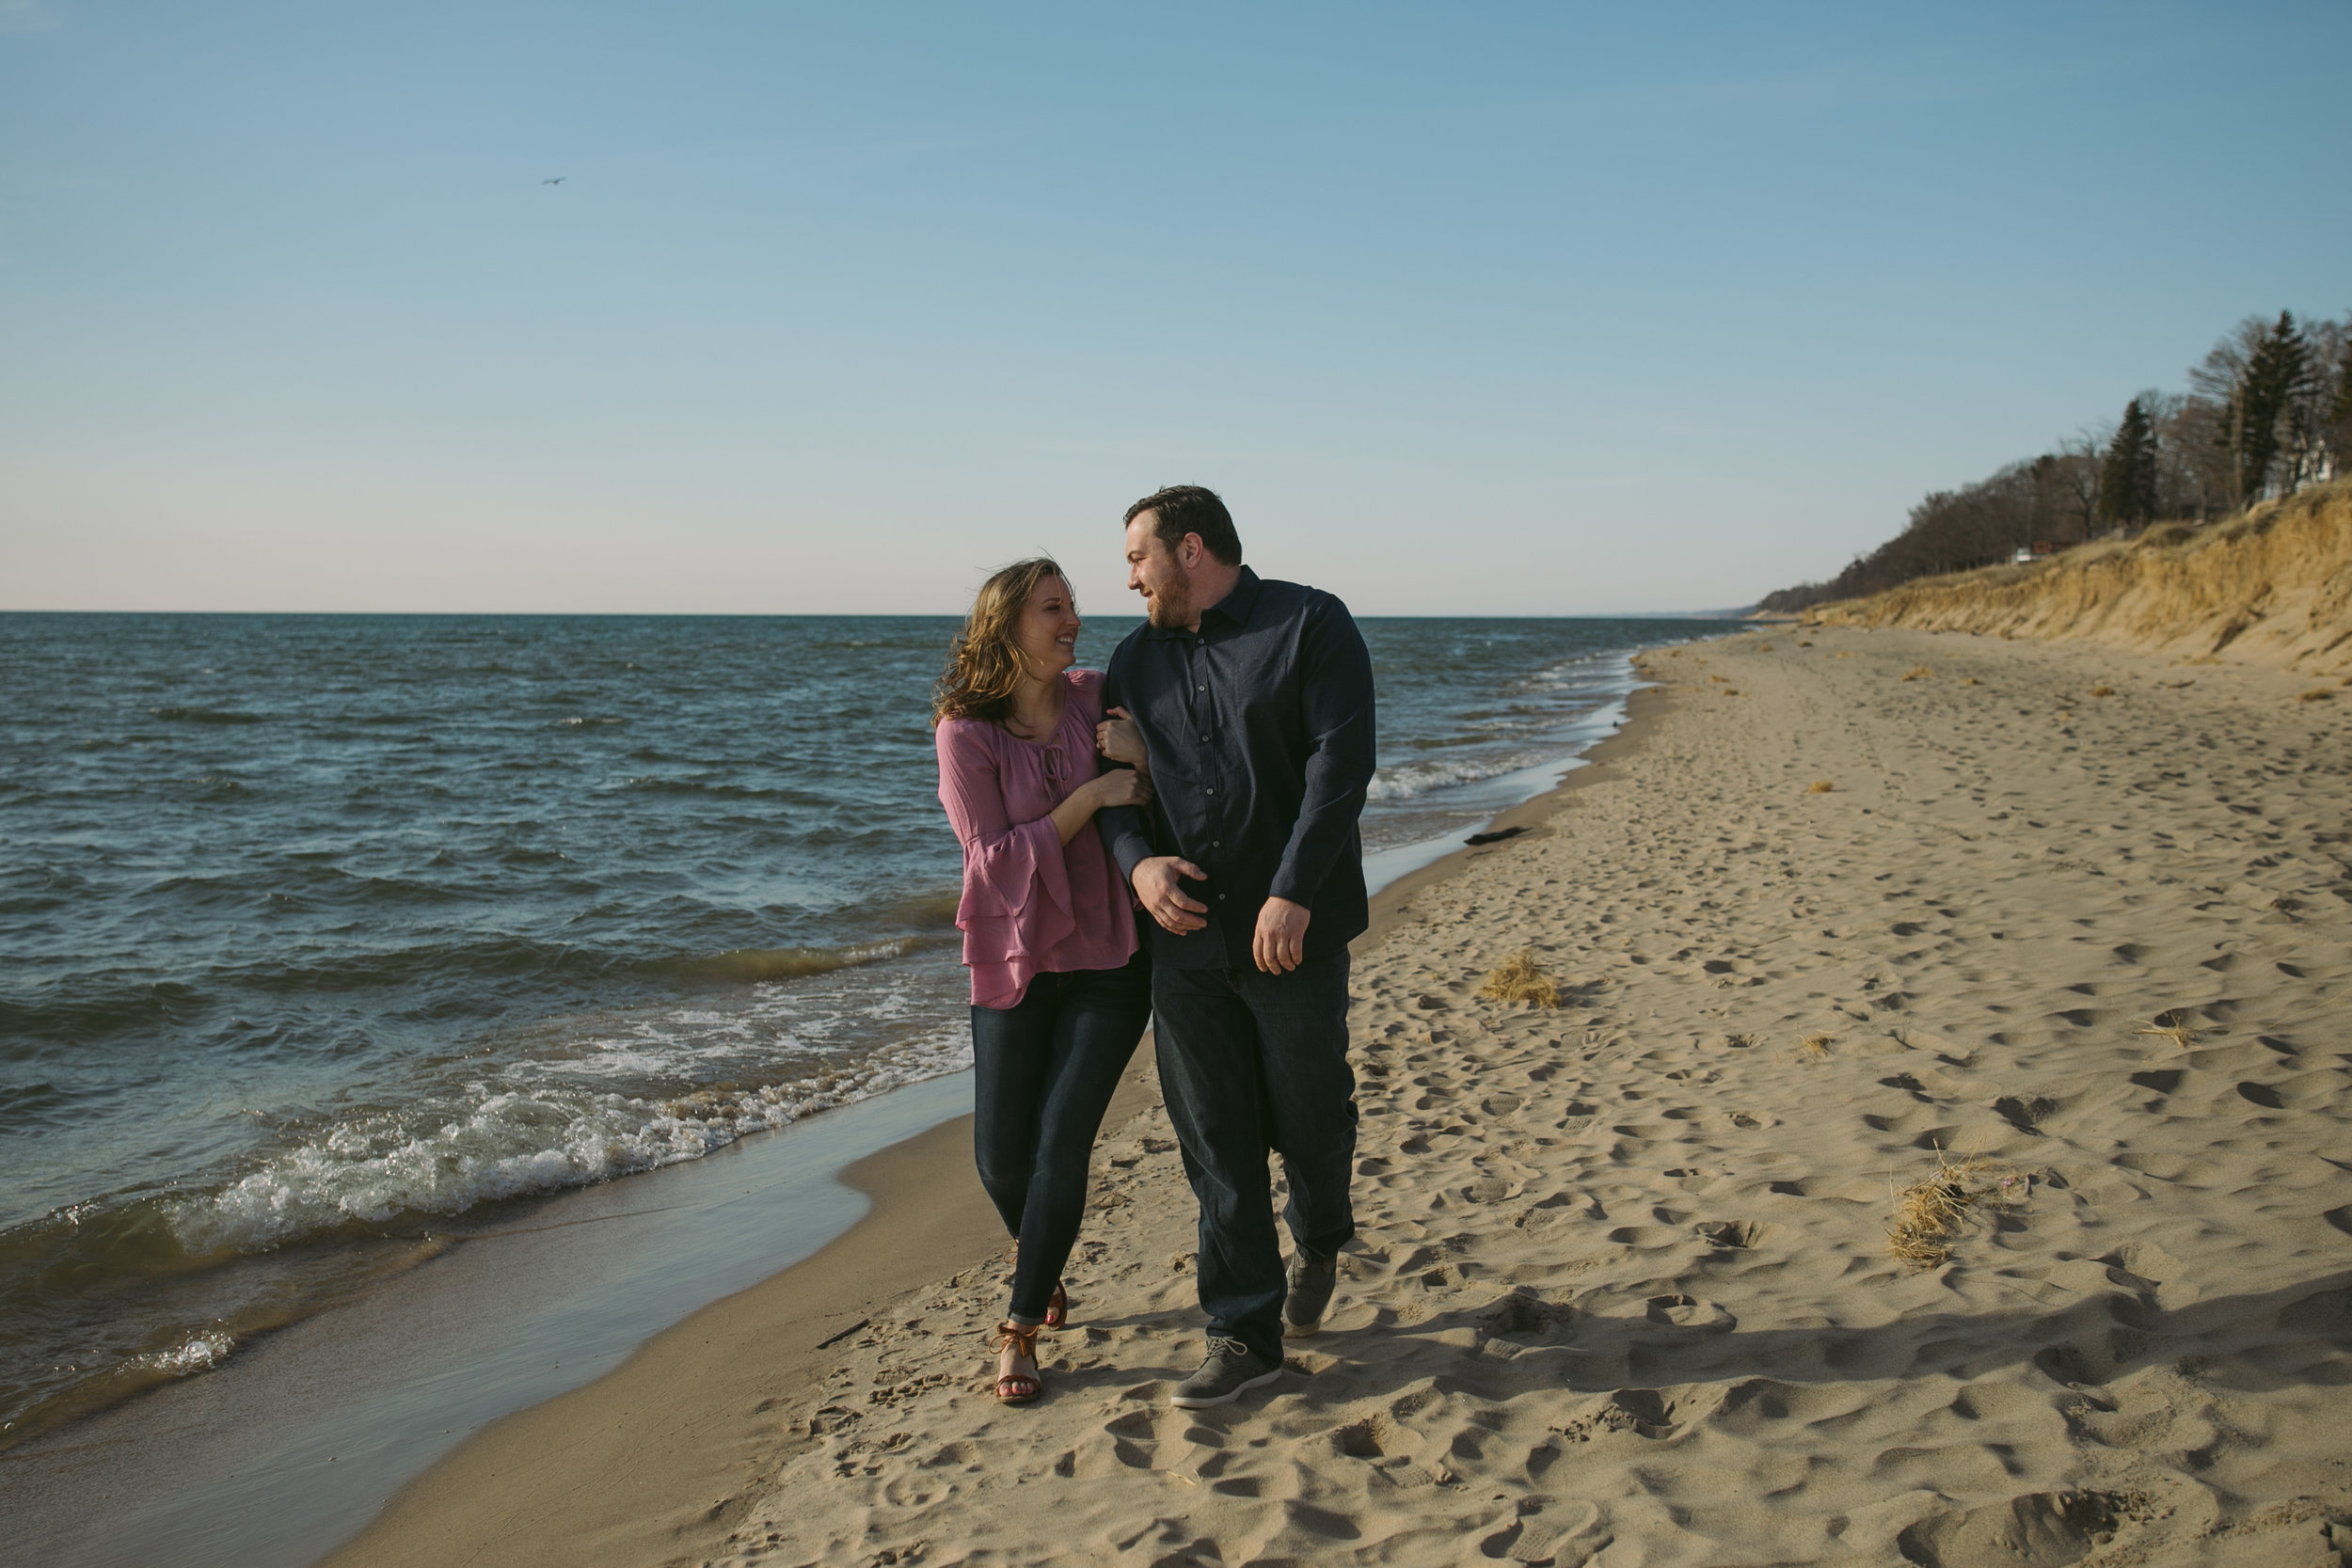 grandrapidsphotographer_hollandmichigan_hollandphotographer_lakemichigan_beachwedding_grandrapids_engaged_jessicadarling_jdarlingphoto_beachengagement007.jpg